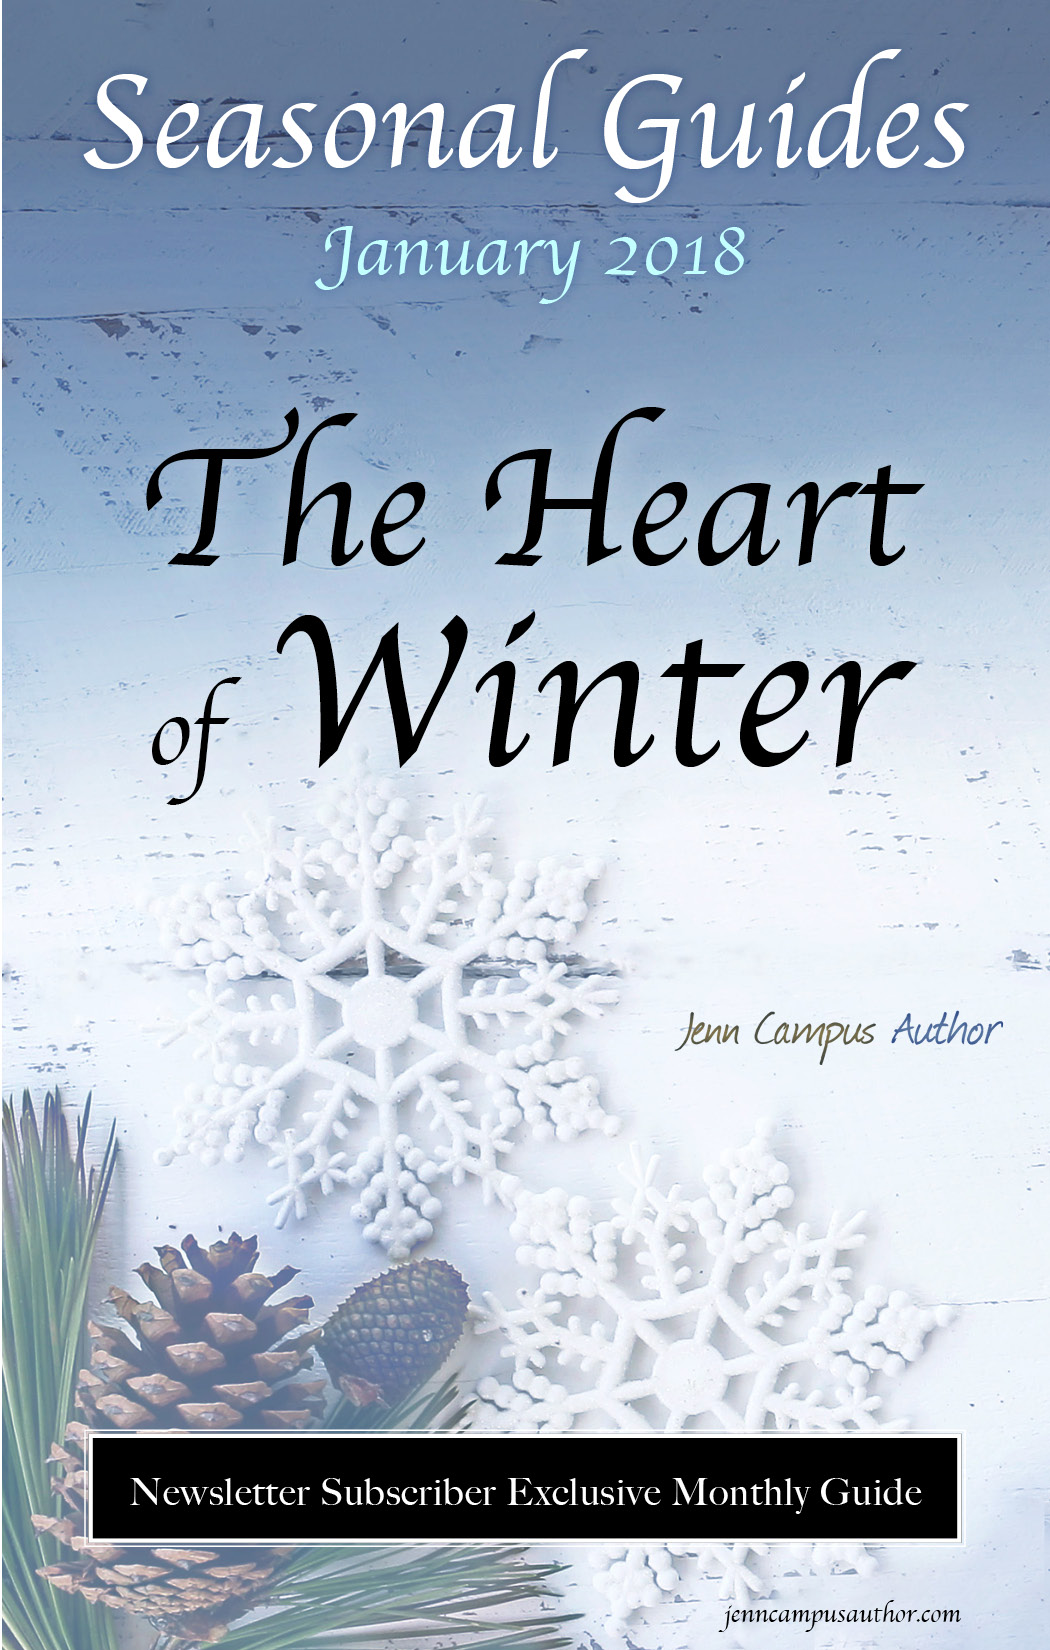 Seasonal Guide for January 2018 - The Heart of Winter